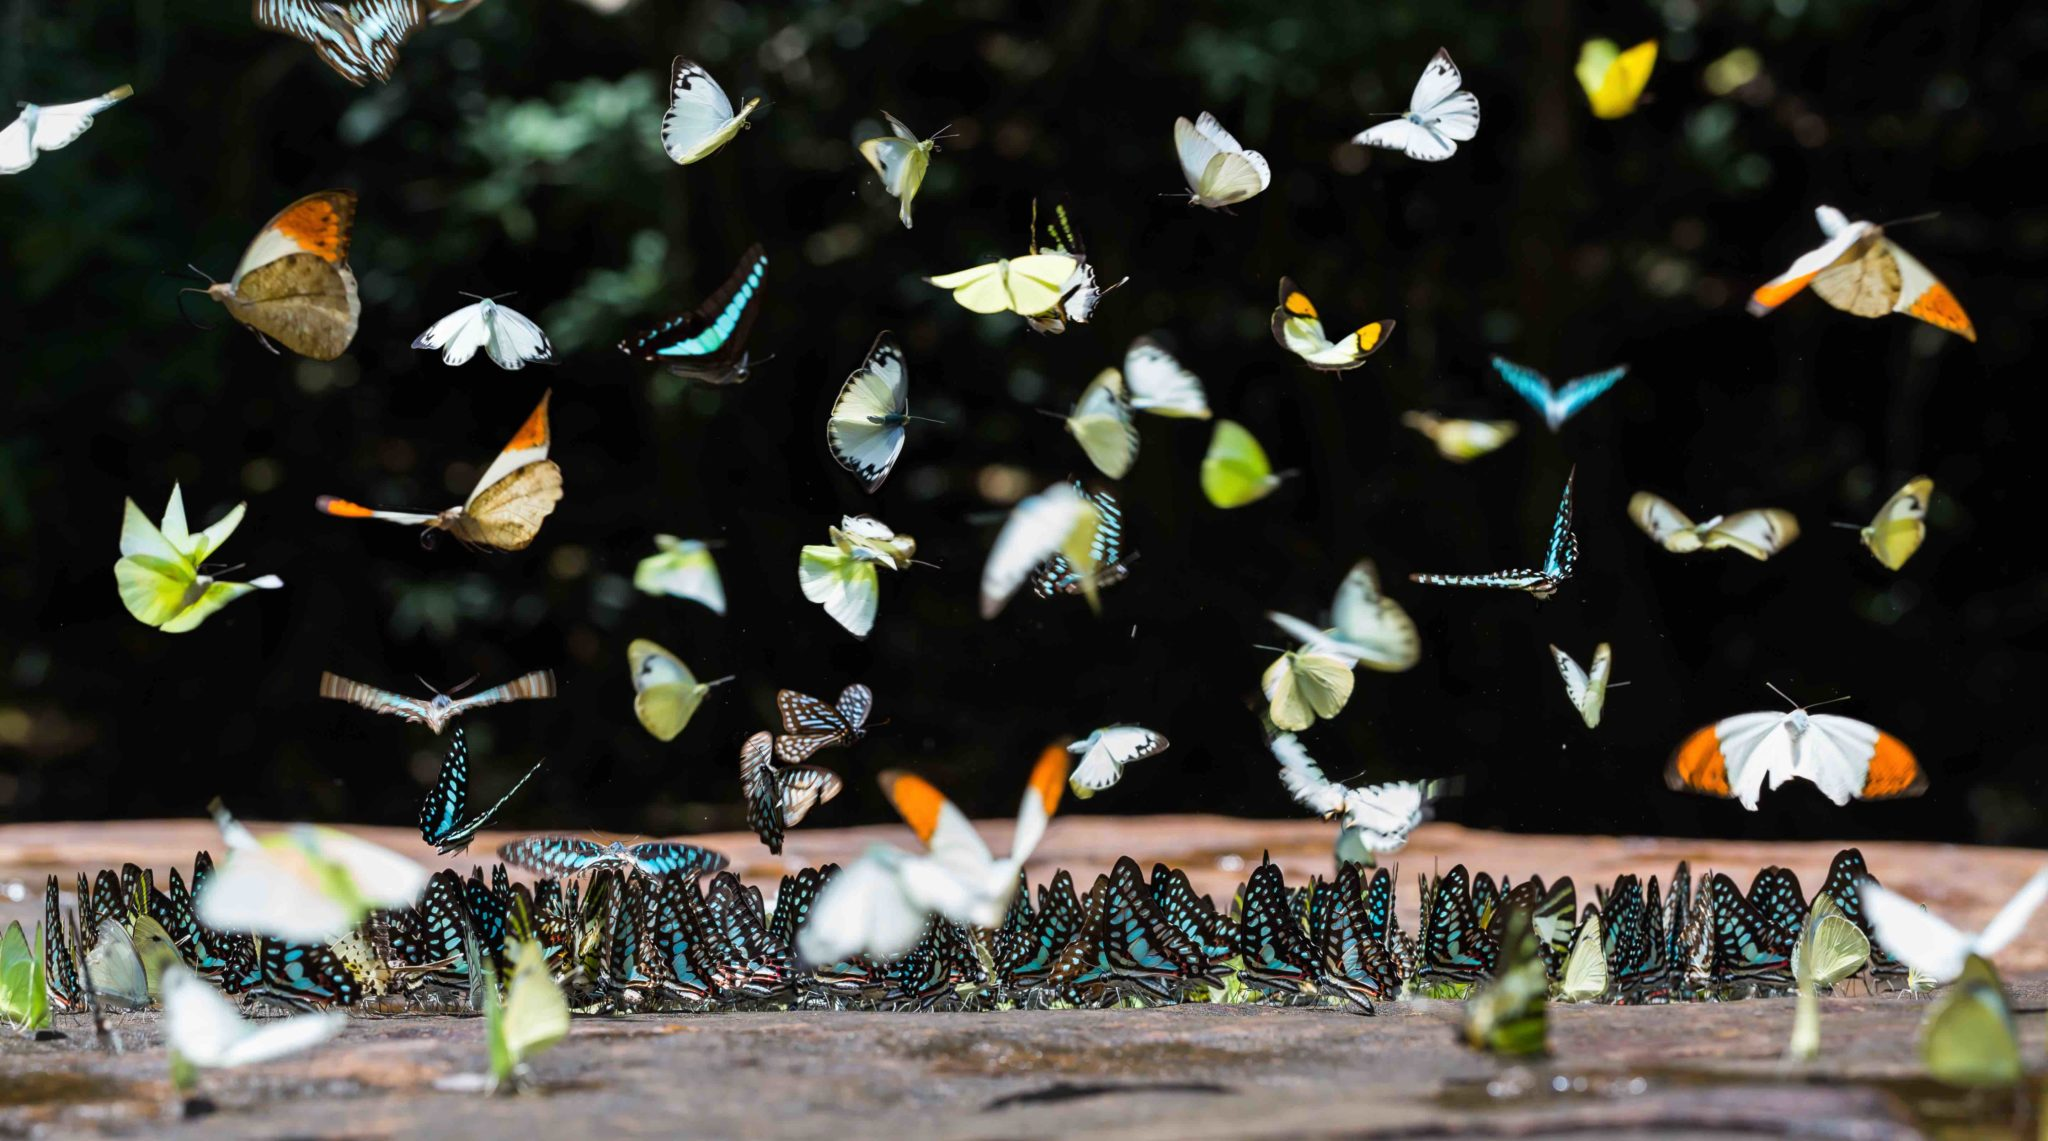 Group of butterflies puddling on the ground and flying in nature, Thailand